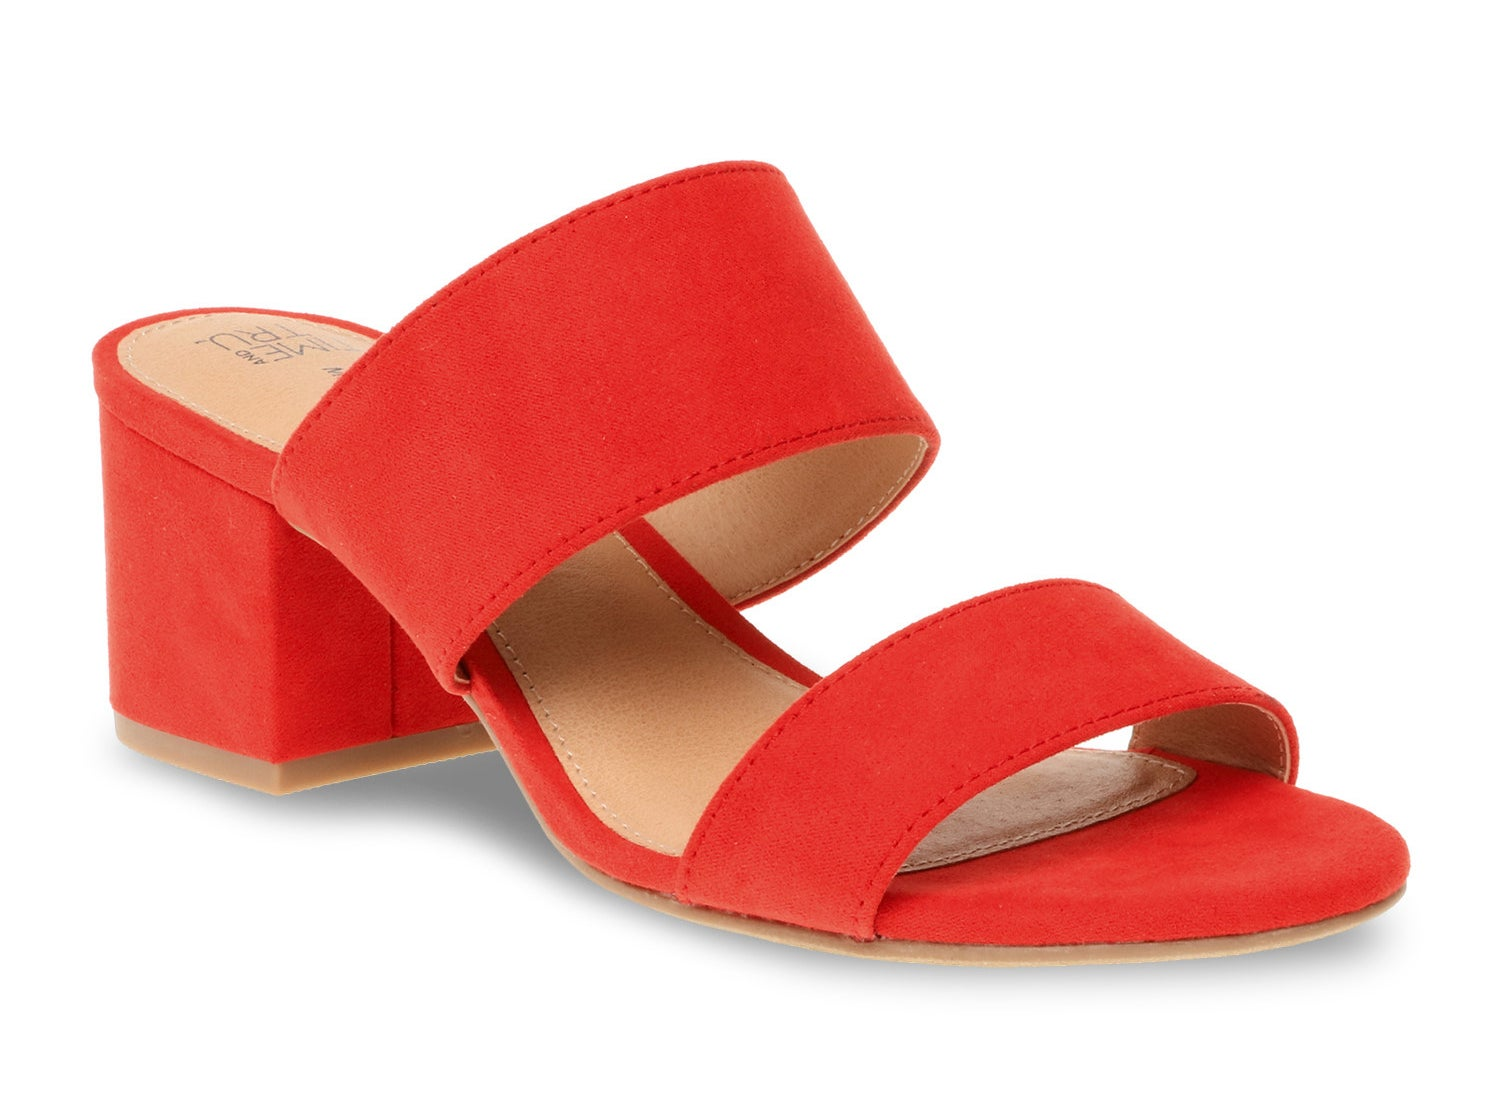 A bright red mule with block heel